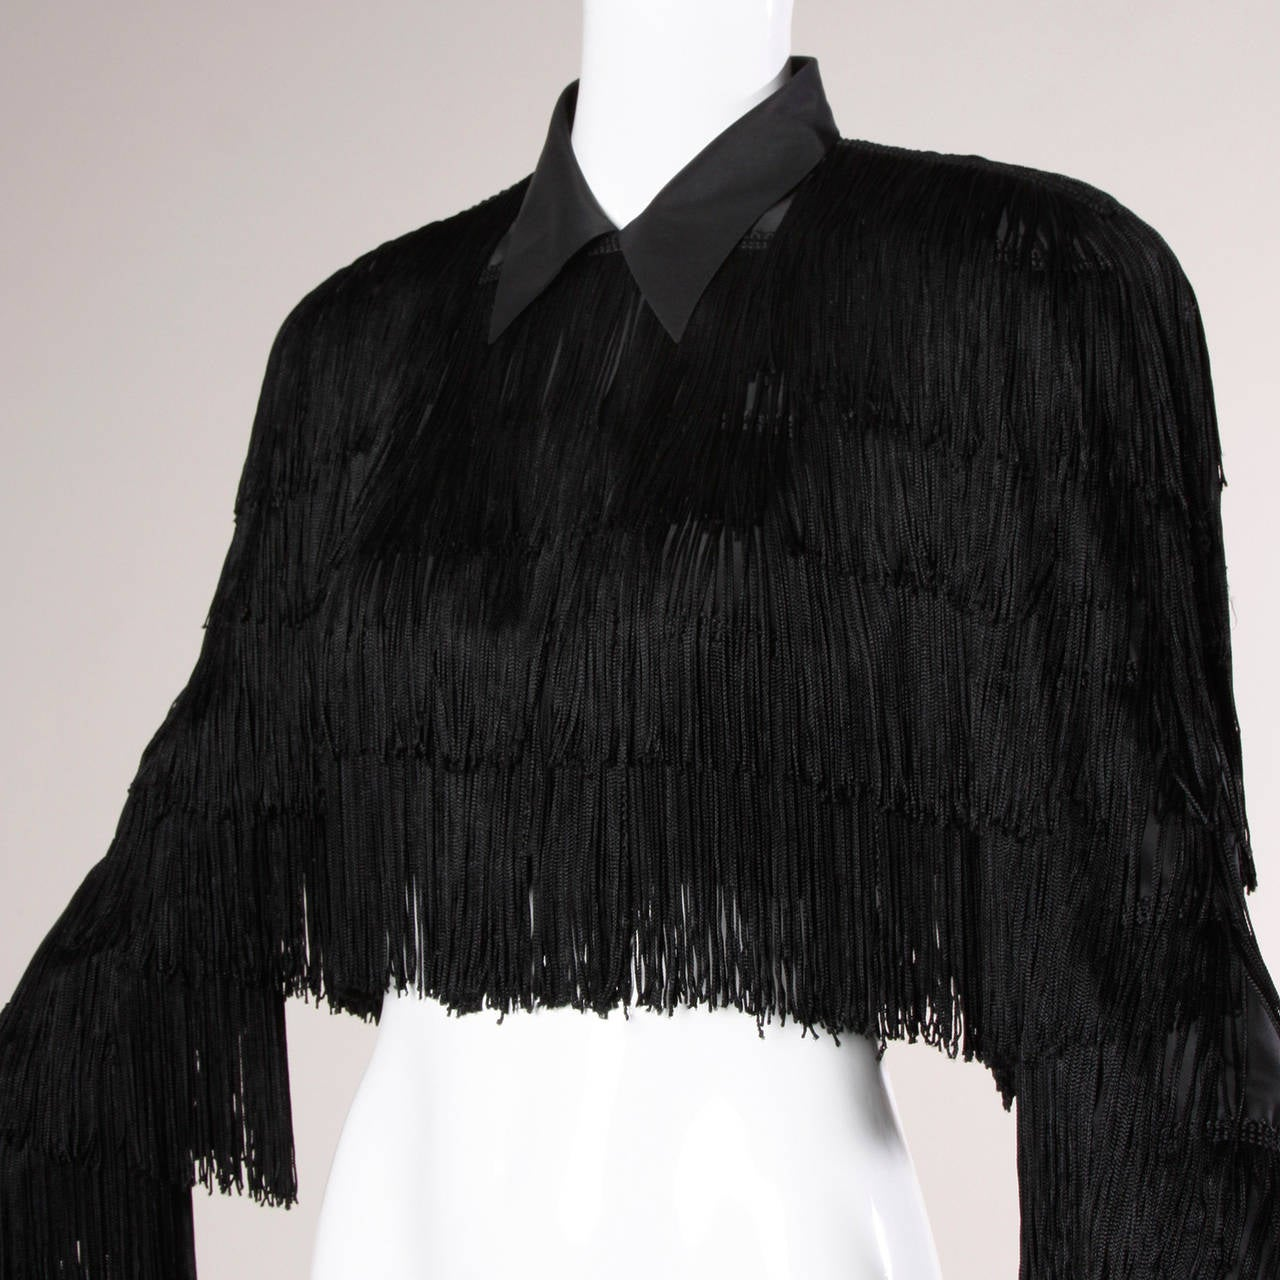 Vintage 1920s-inspired black fringe jacket by Norma Kamali. 